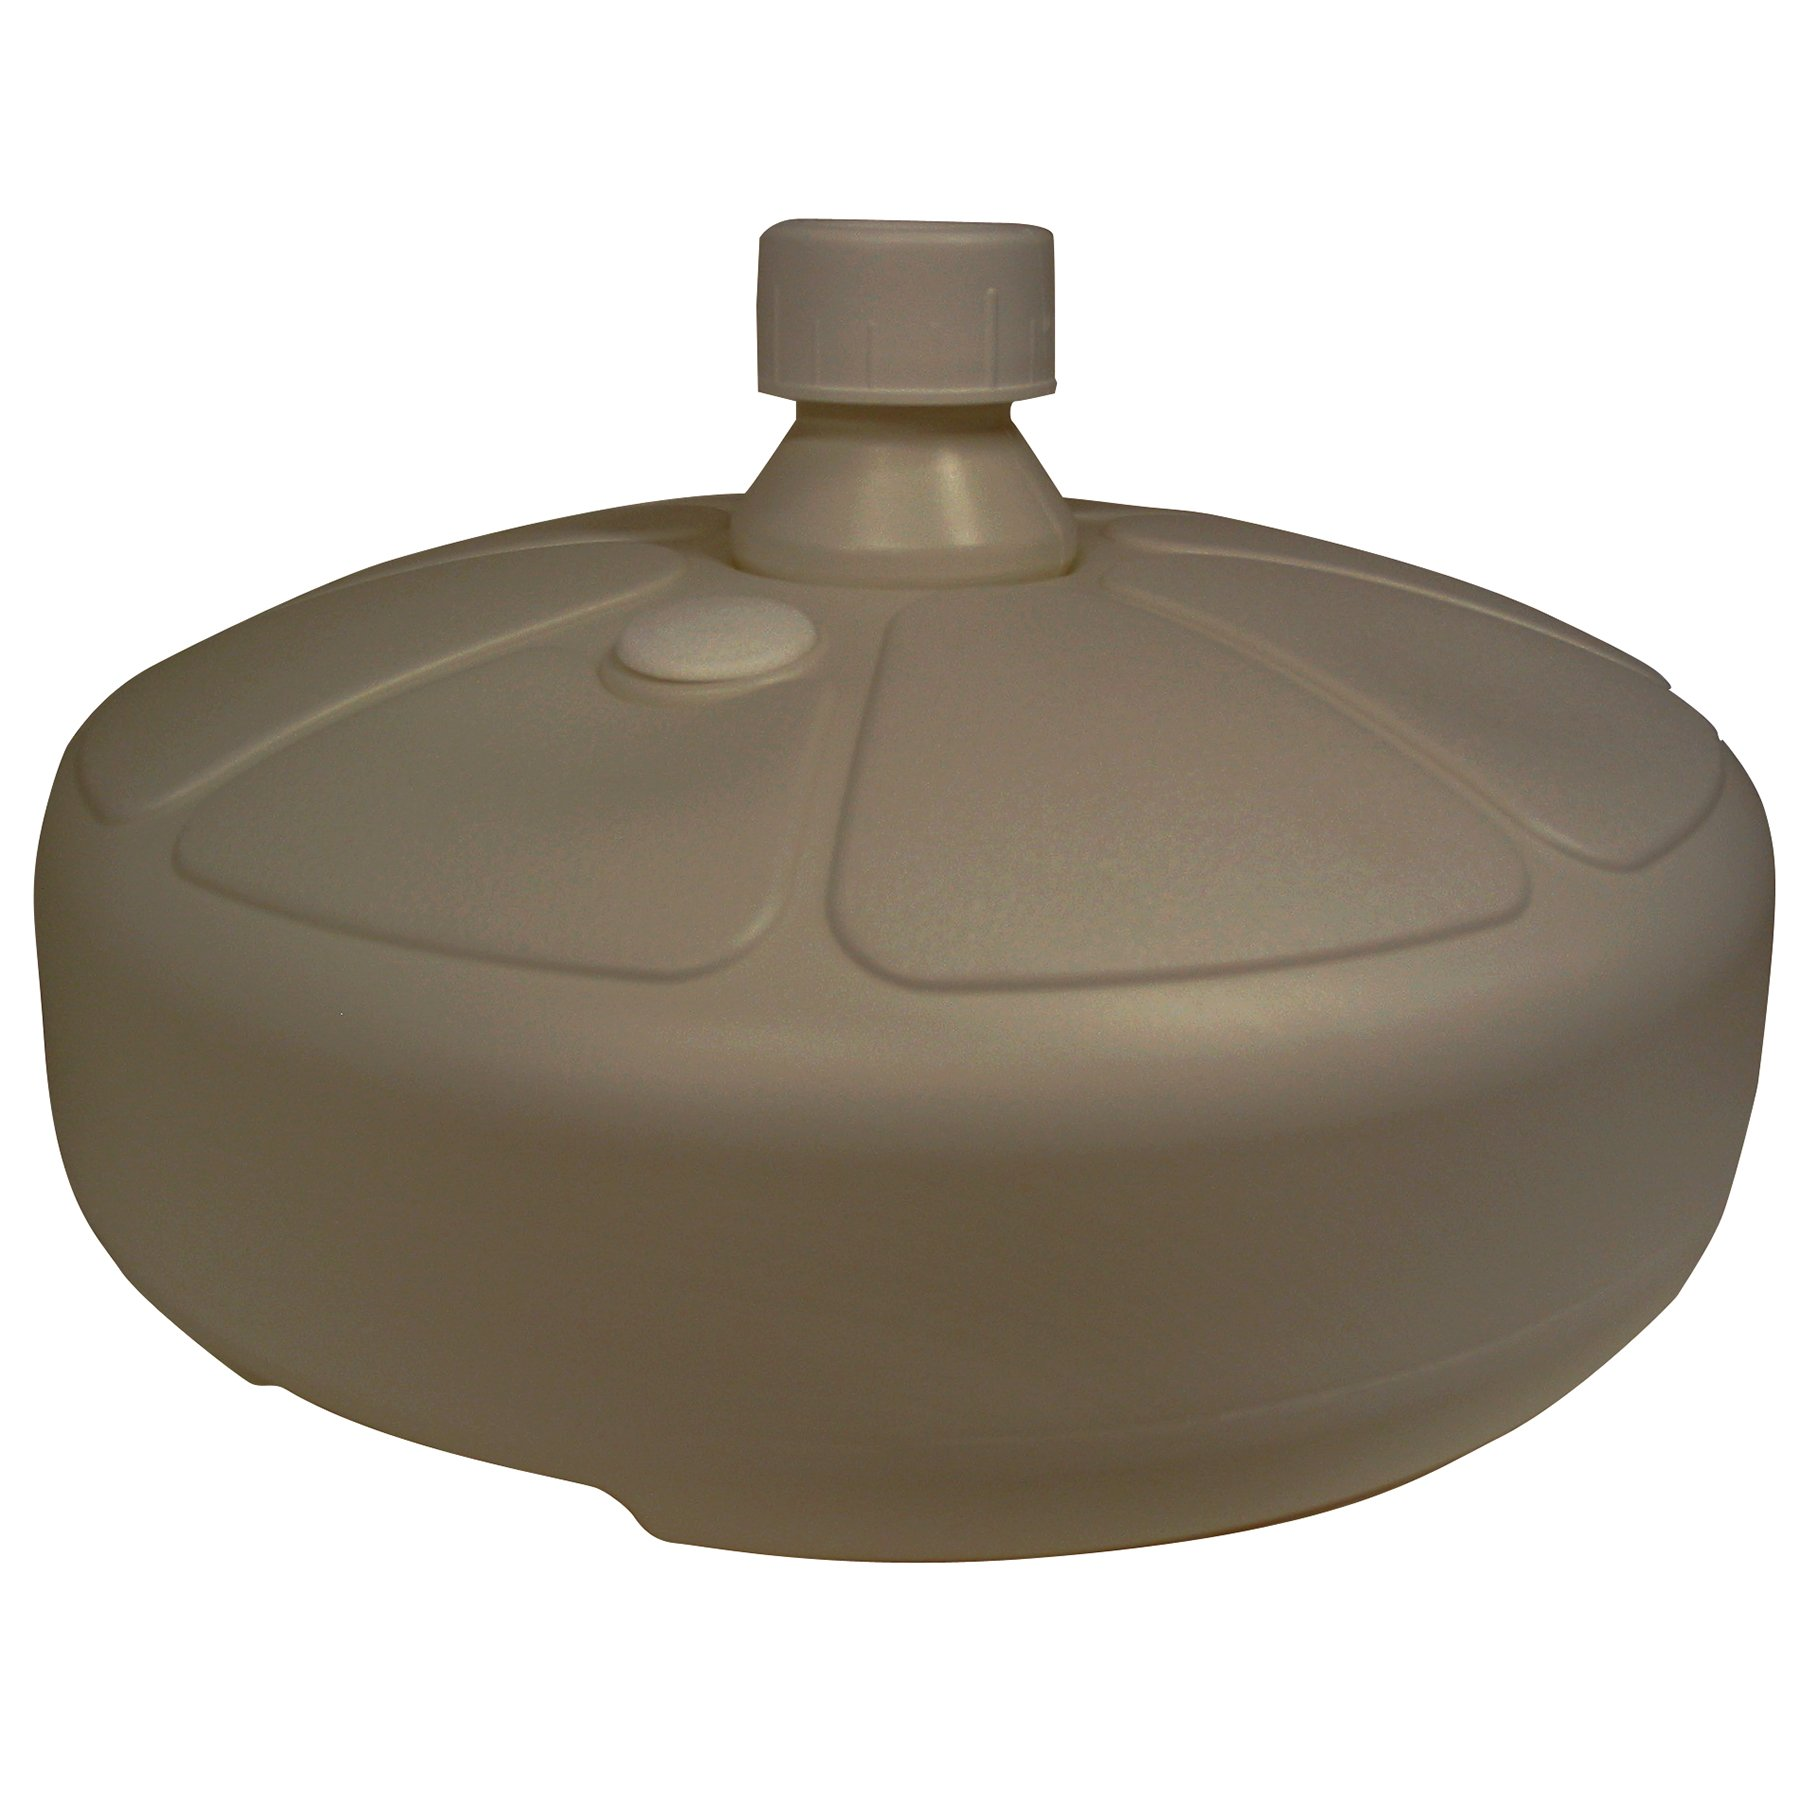 Adams 8129-96-3750 Umbrella Base, Portobello by Adams